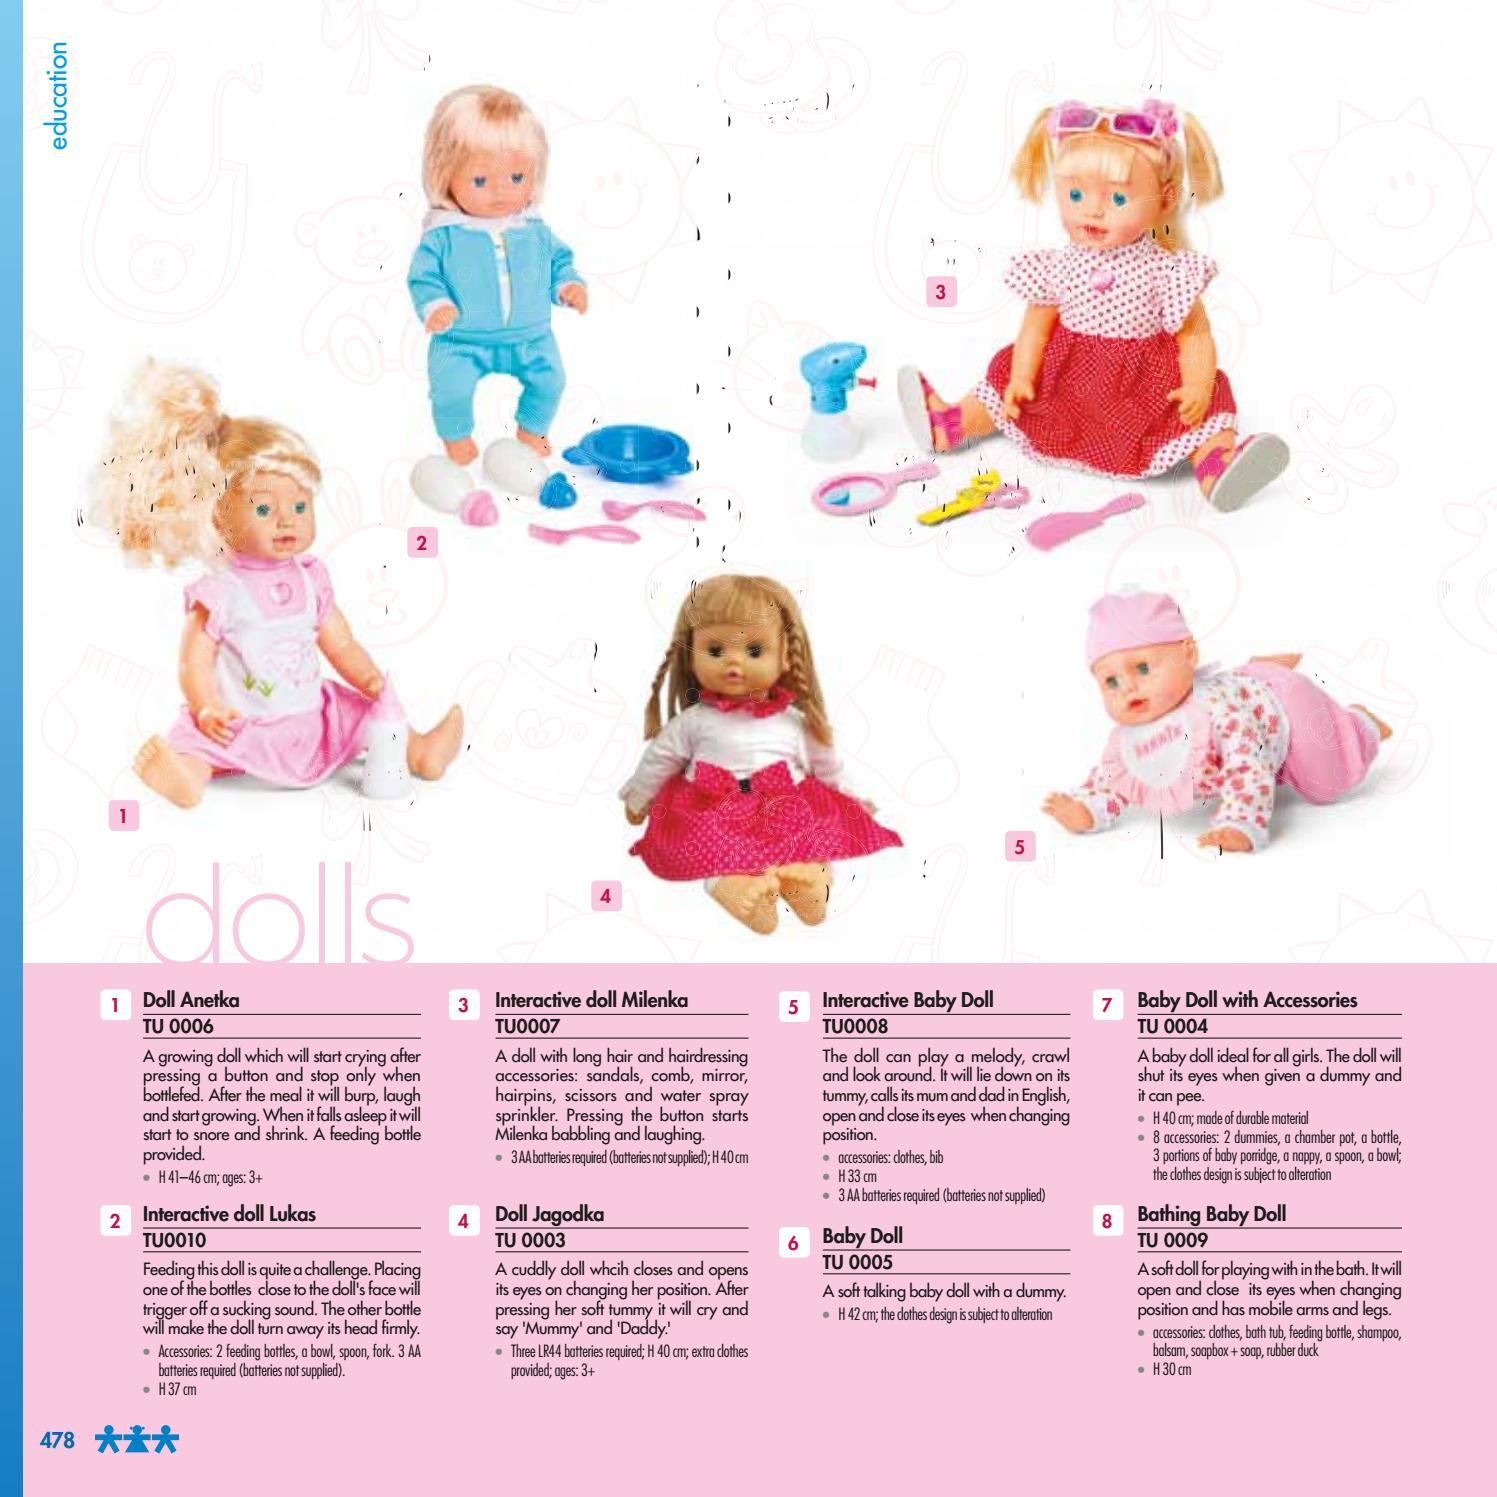 Provided Doll Dolls, Clothing & Accessories